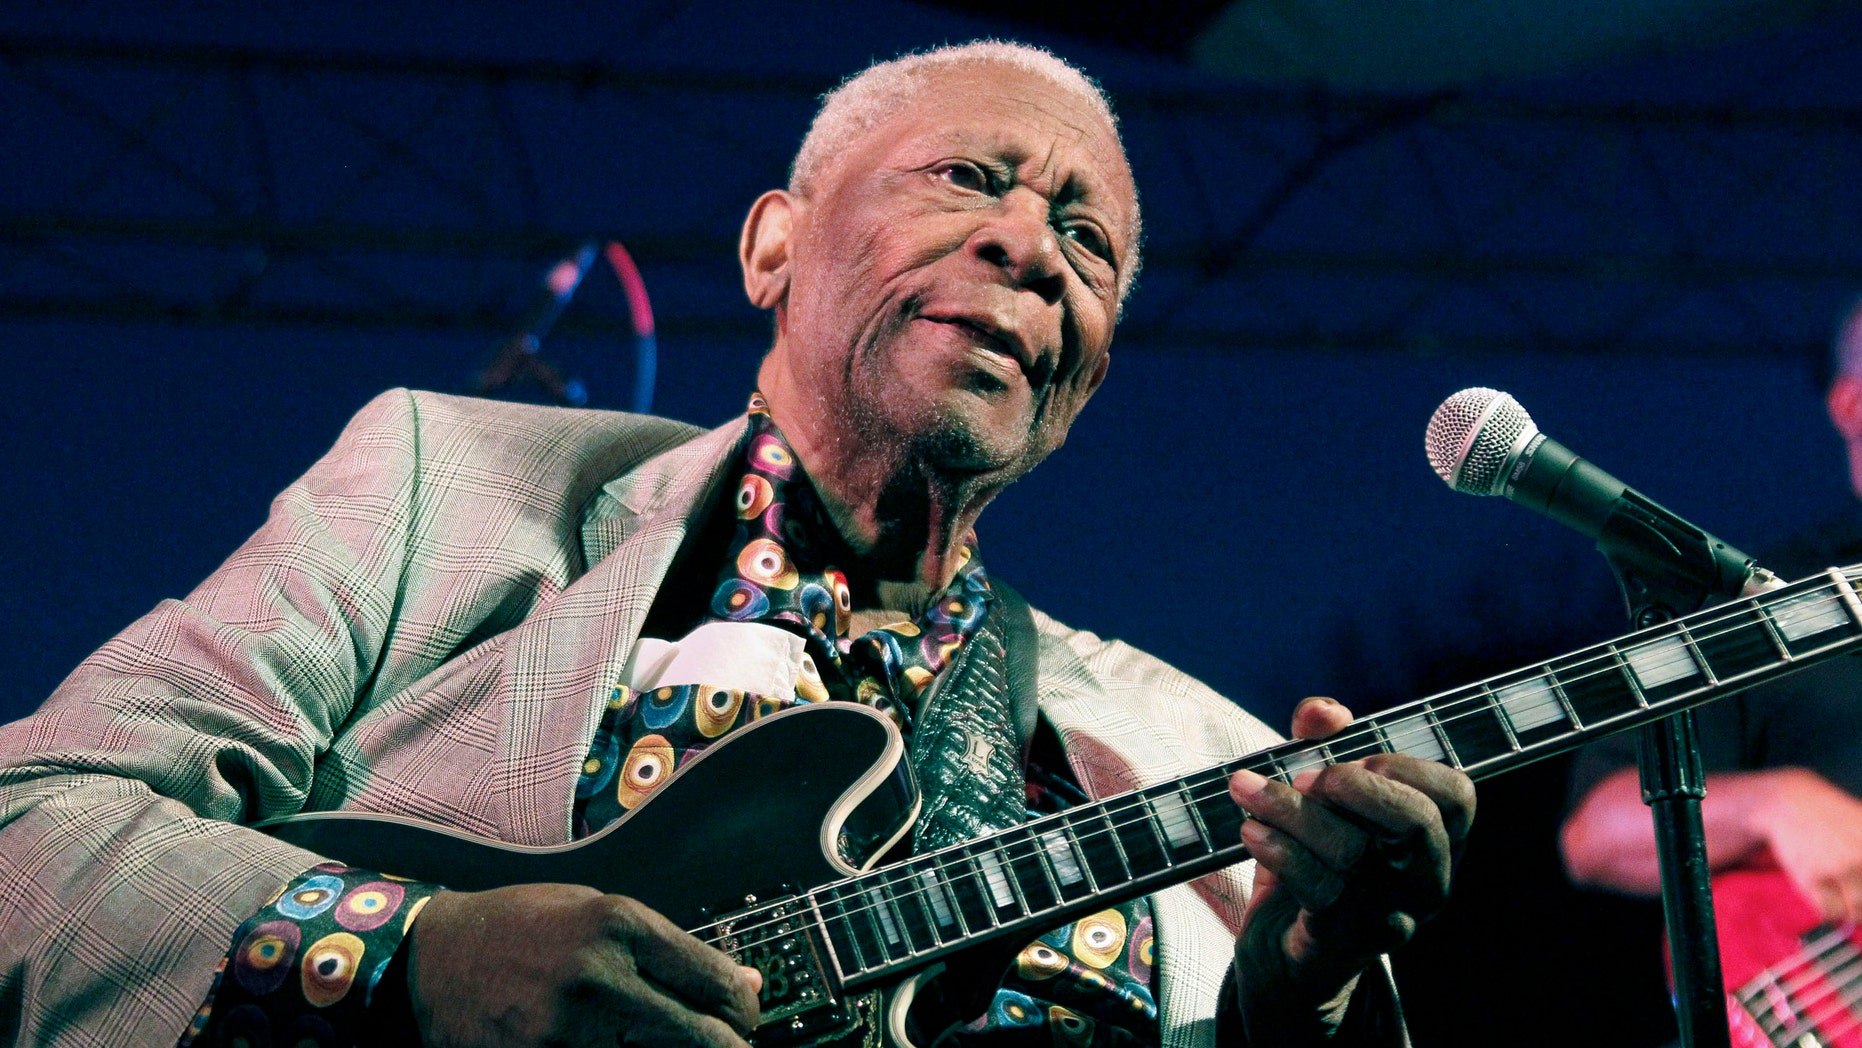 Aug. 22, 2012. B.B. King performs at the 32nd annual B.B. King Homecoming, a concert on the grounds of an old cotton gin where he worked as a teenager in Indianola, Miss.